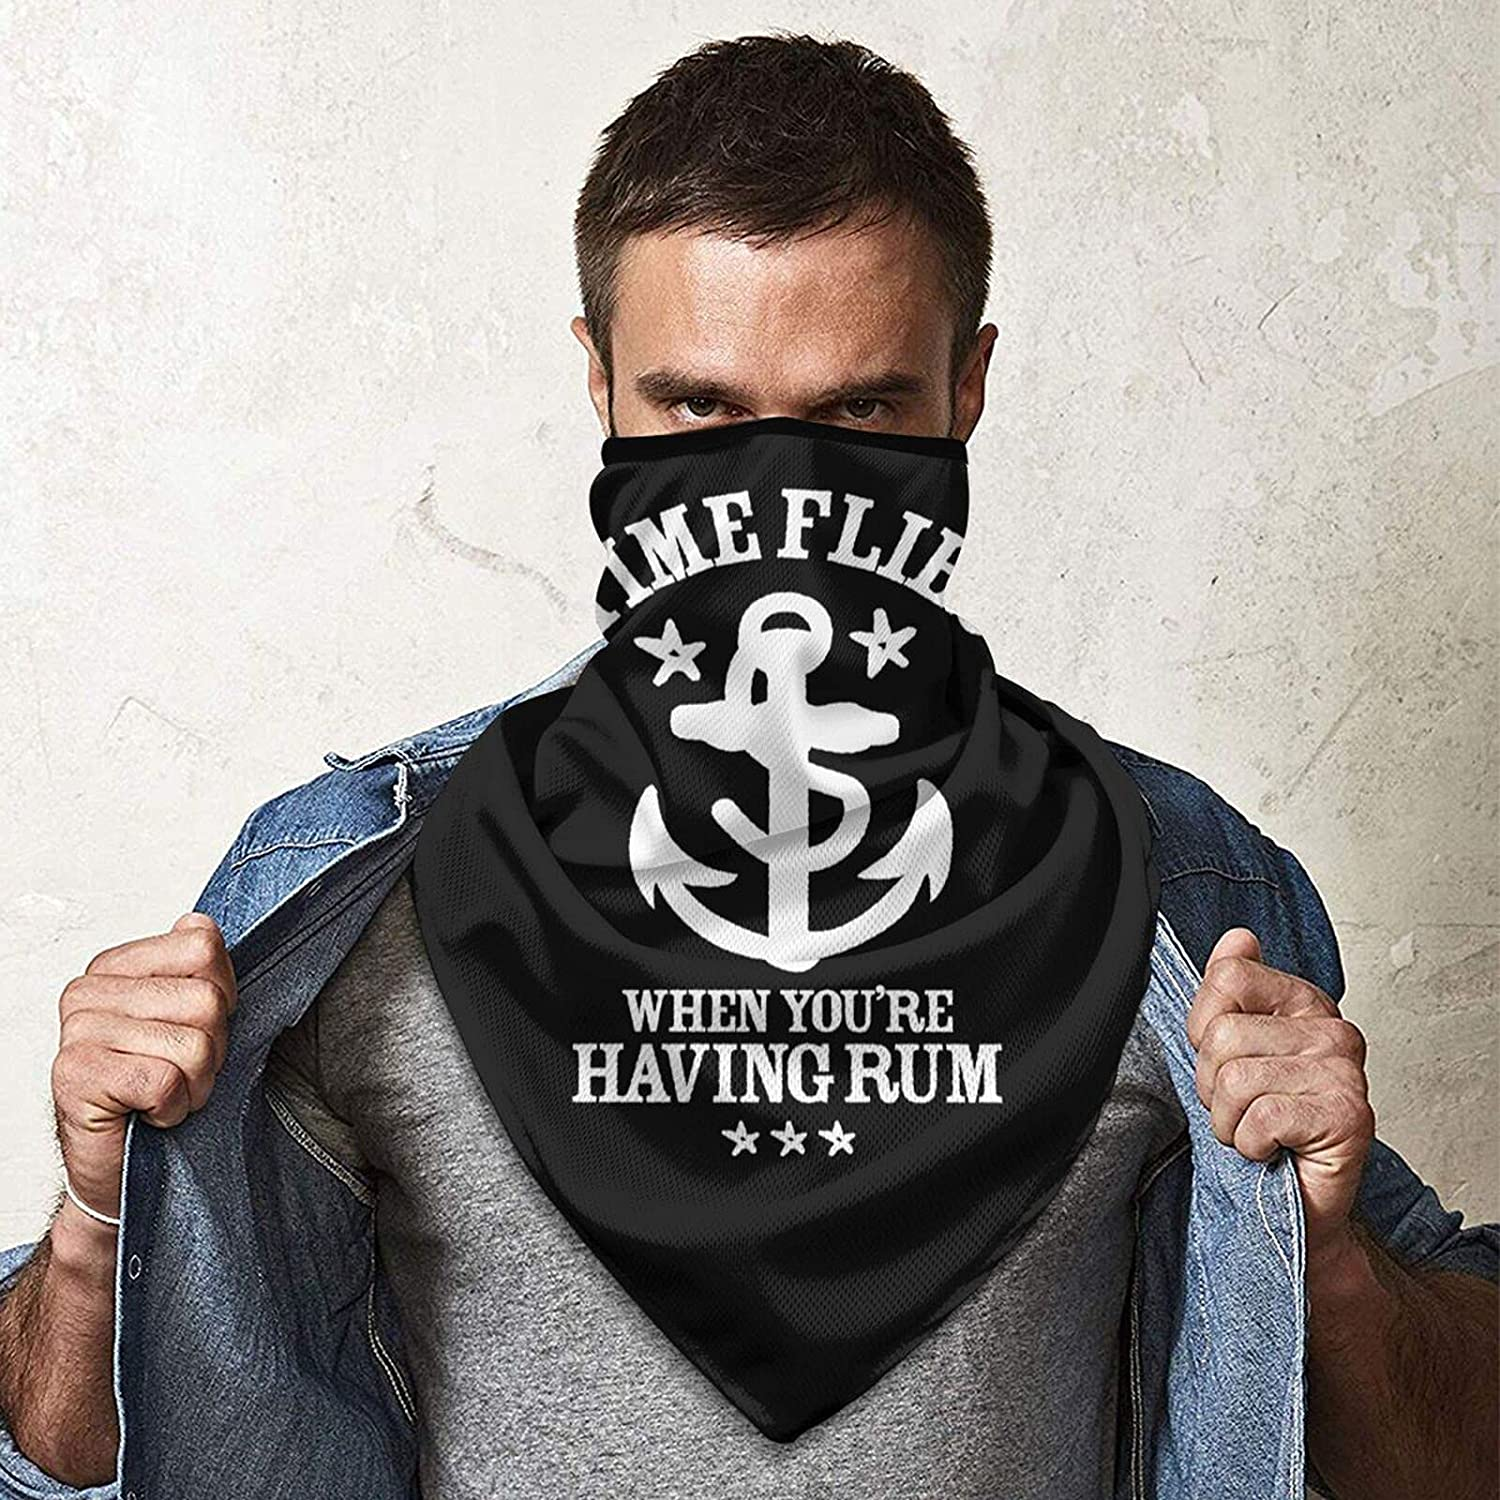 The Time Flies When Your Haveing Rum 1 Neck Gaiter Bandnas Face Cover Uv Protection Prevent bask in Ice Triangle Scarf Headbands Perfect for Motorcycle Cycling Running Festival Raves Outdoors Black